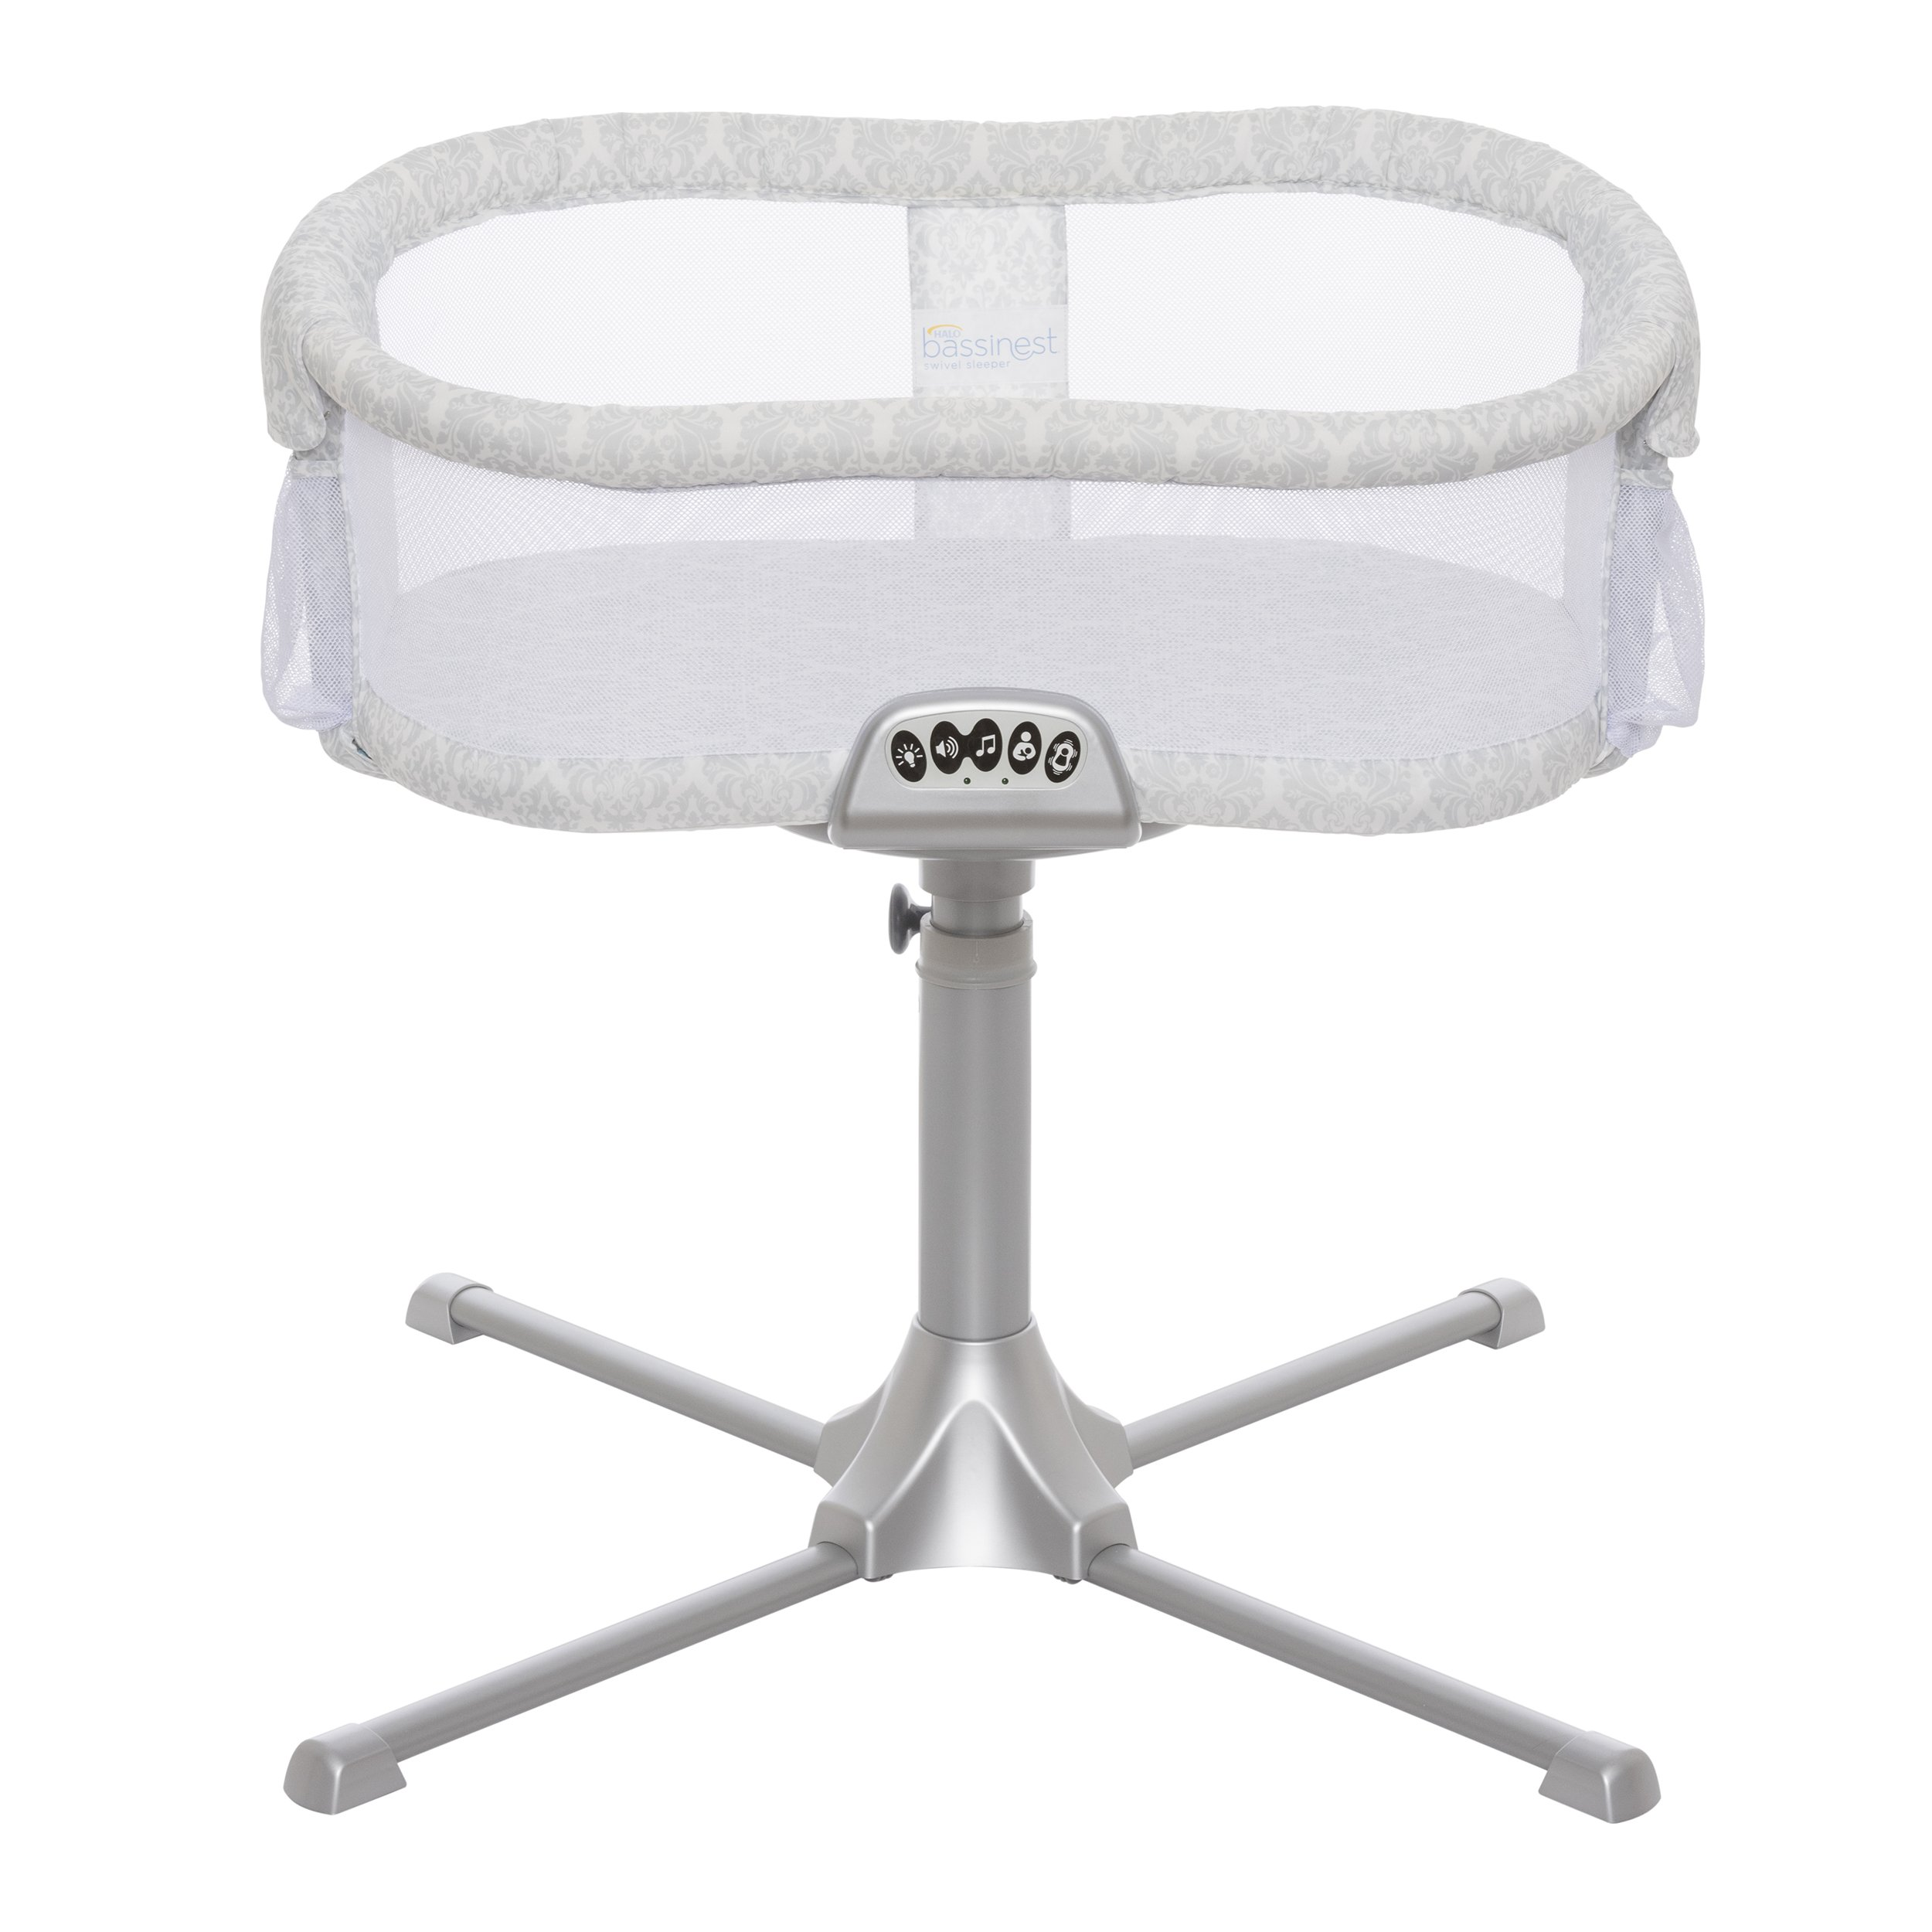 HALO Bassinest Swivel Sleeper – Premiere Series Bassinet by Halo (Image #8)